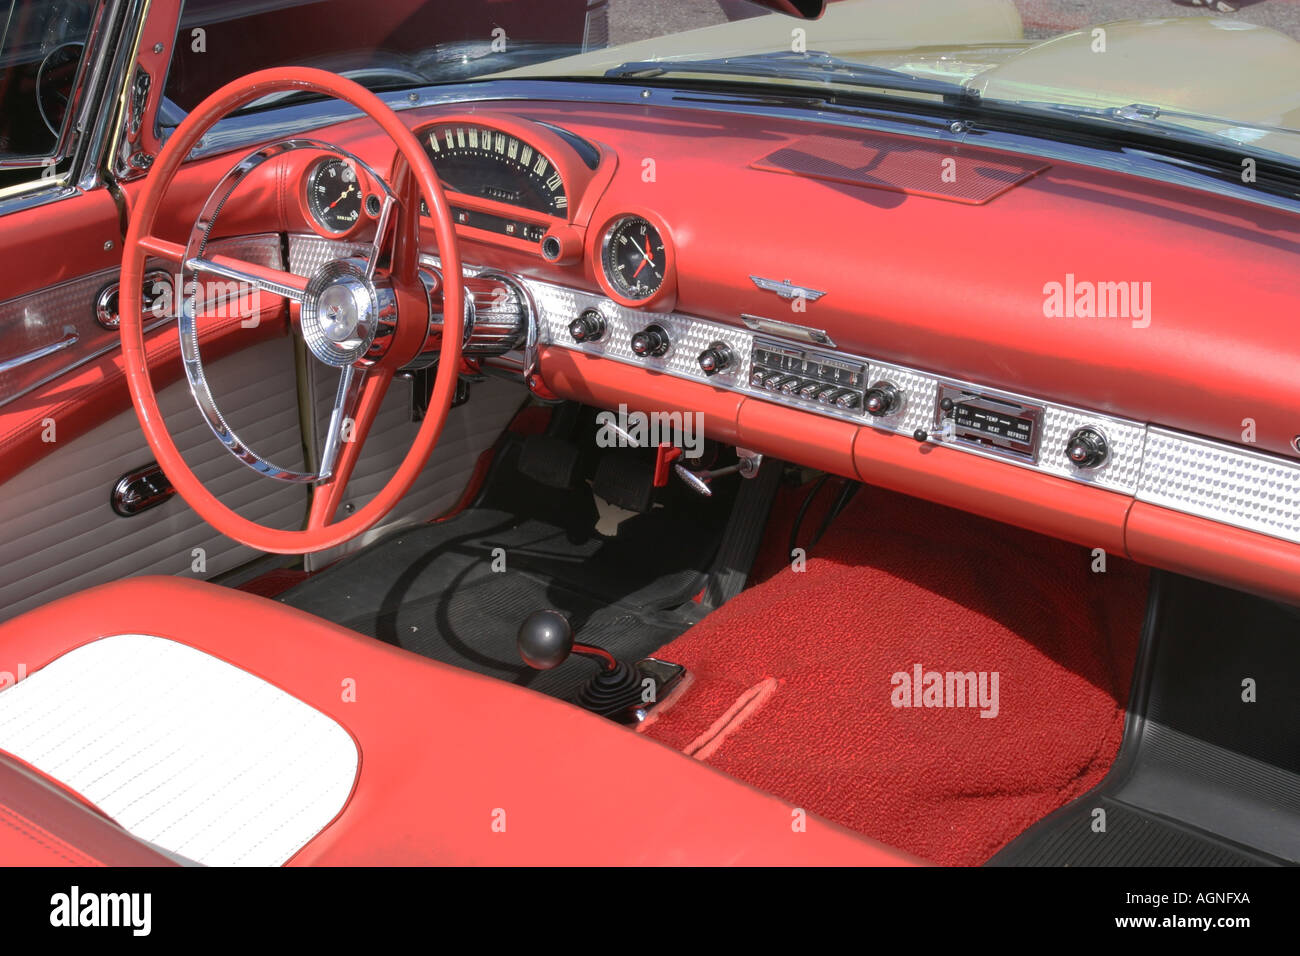 1955 Ford Stock Photos Images Alamy F100 Truck Steering Wheels Interior Of A Thunderbird Convertible Seen During Us Car Meeting Organized By The